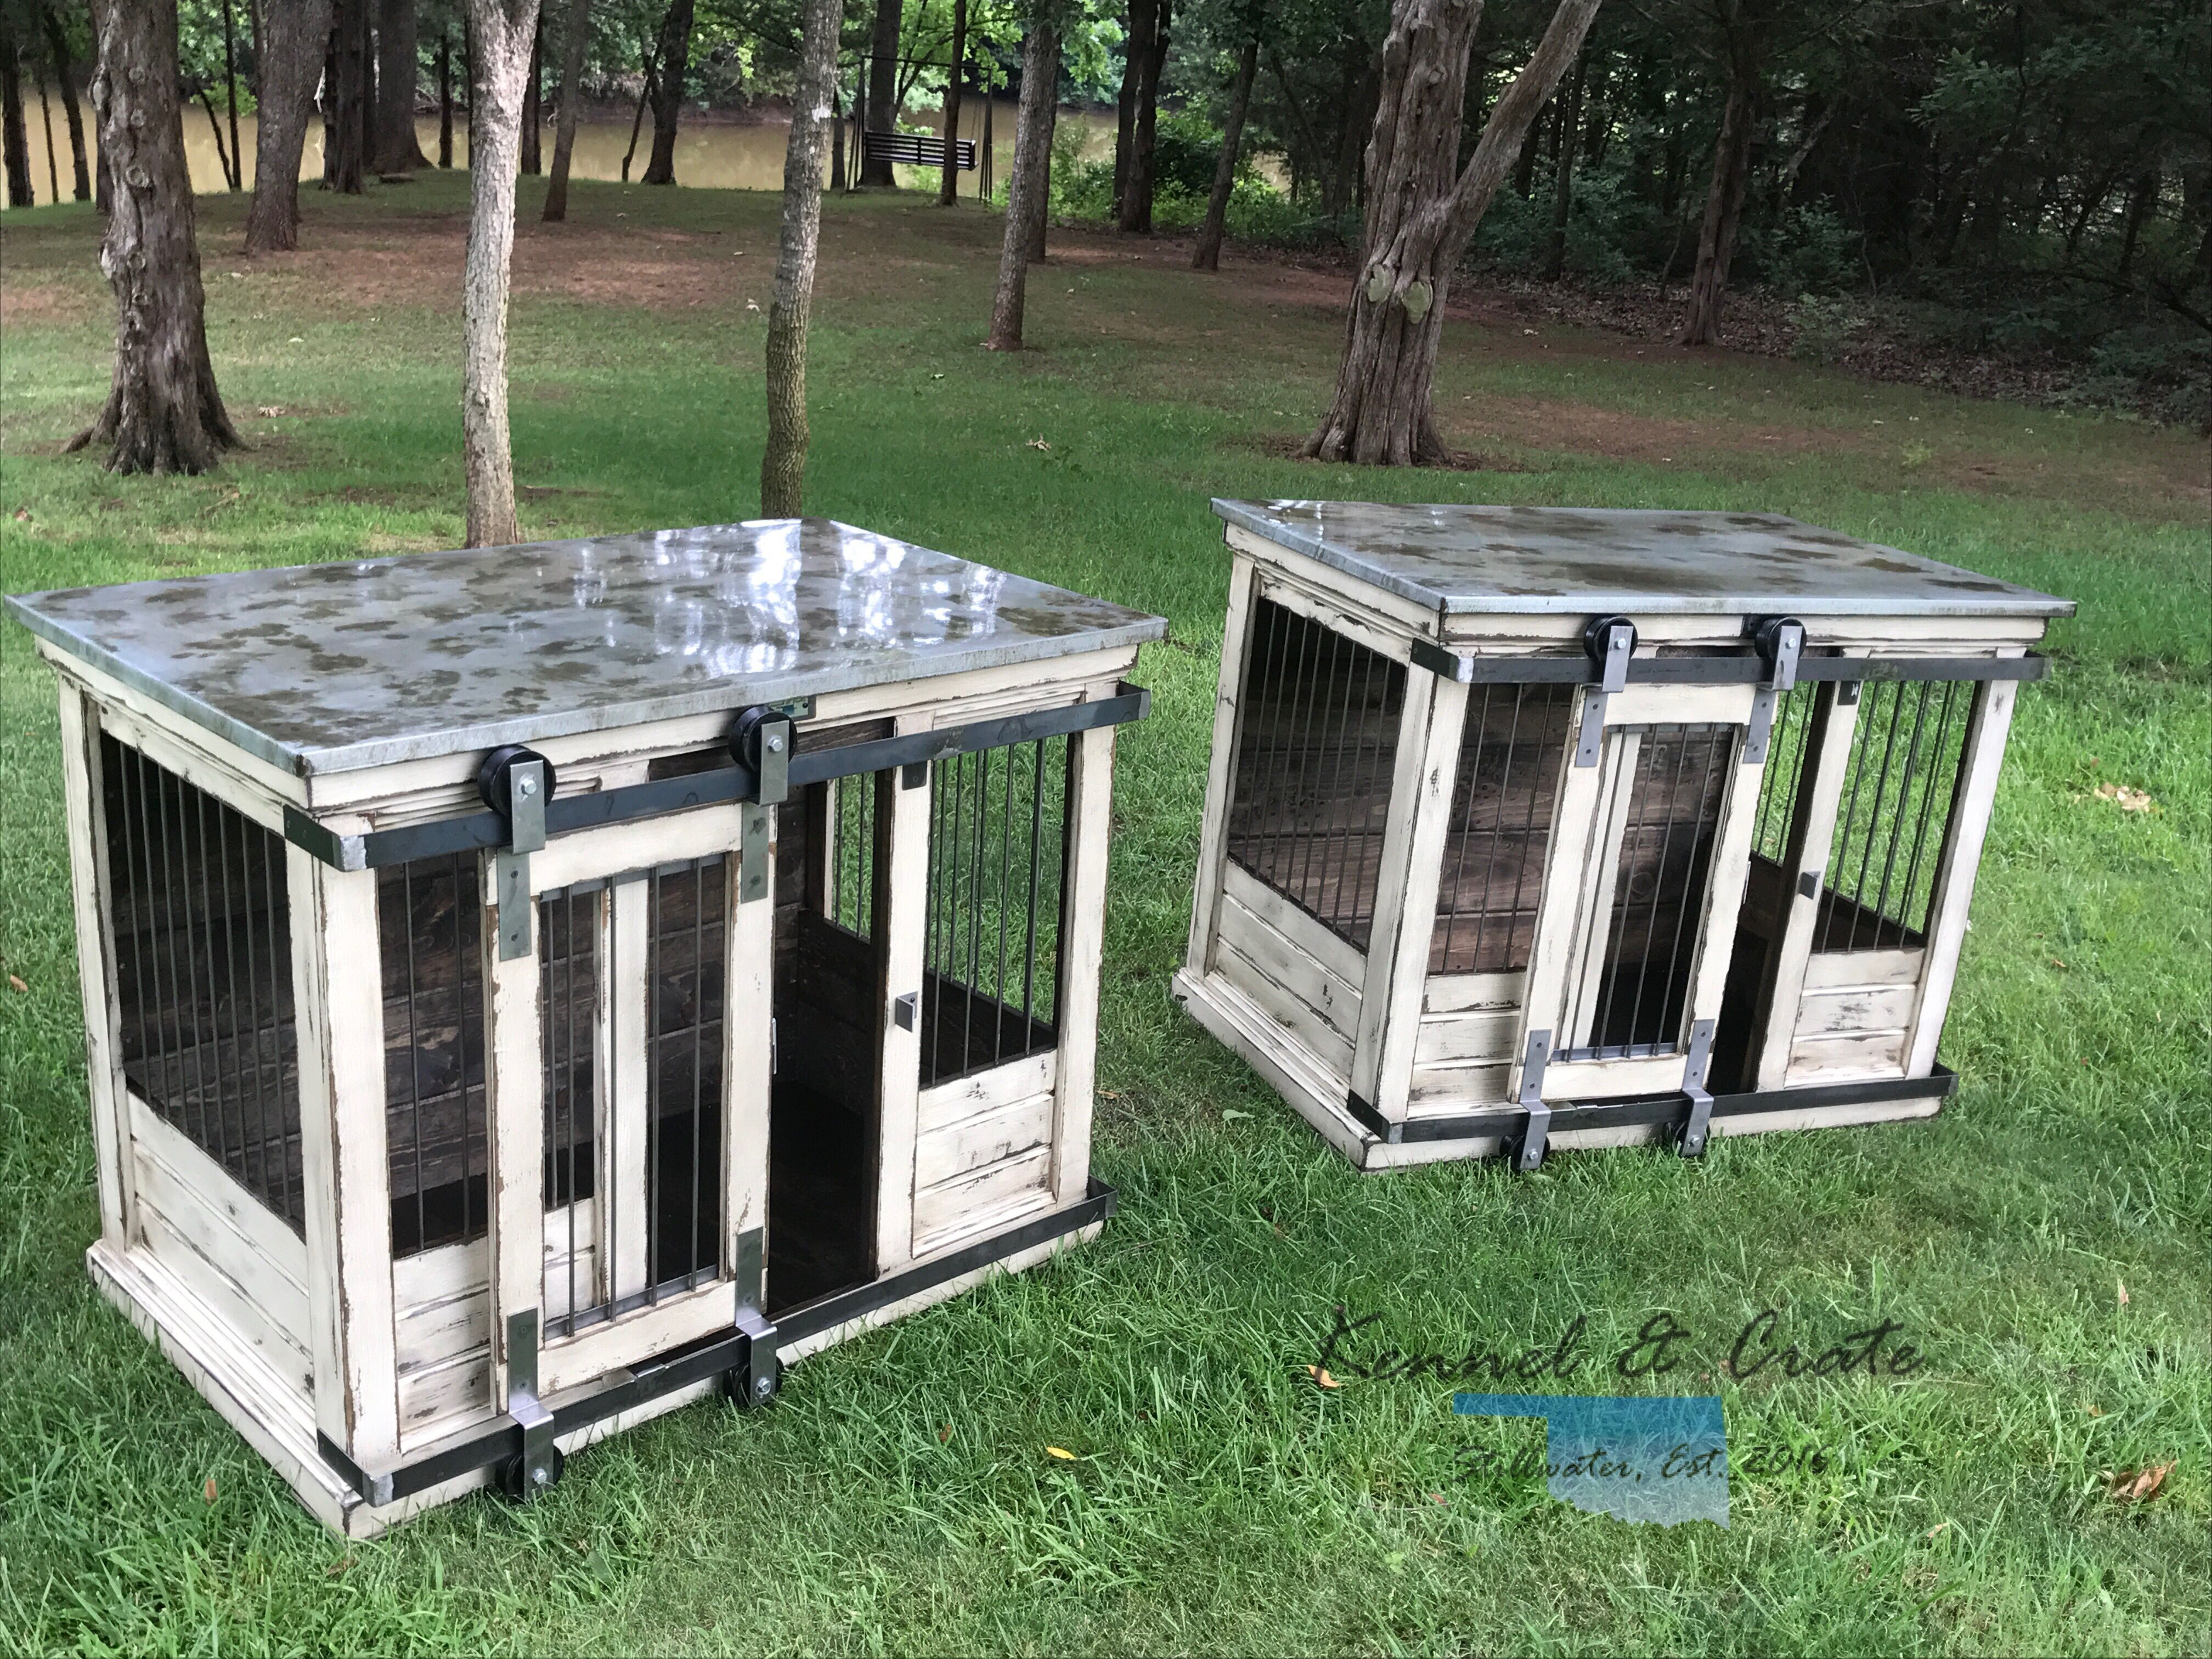 Designer Indoor Dog Kennels Replace Your Wire Dog Crate With A Beautiful Piece Of Functional Furniture Gre Dog Kennel Dog Kennel Outdoor Luxury Dog Kennels